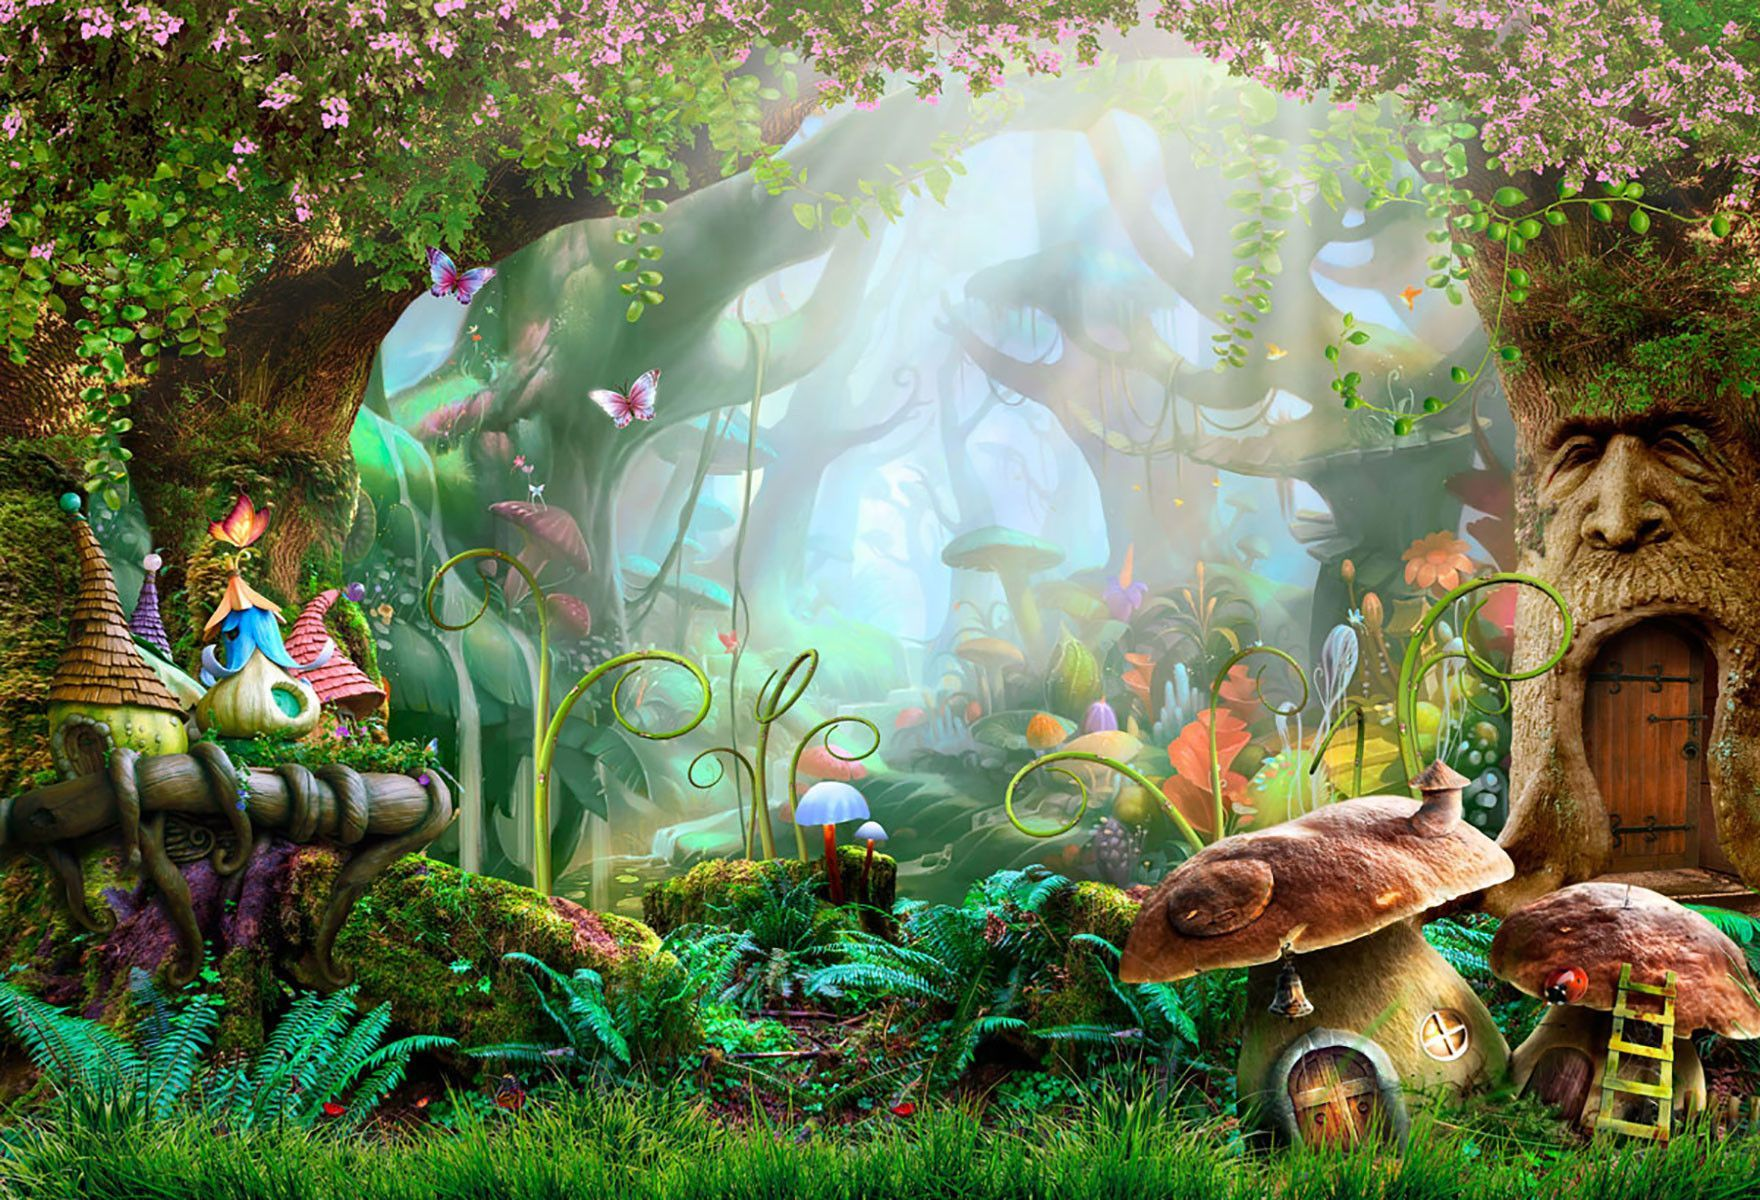 Baby Backdrops Cartoon Fairytale Backdrops Wonderland Background Hj03508 Forest Backdrops Fairy Garden Ideas Enchanted Forest Fairy Tale Forest